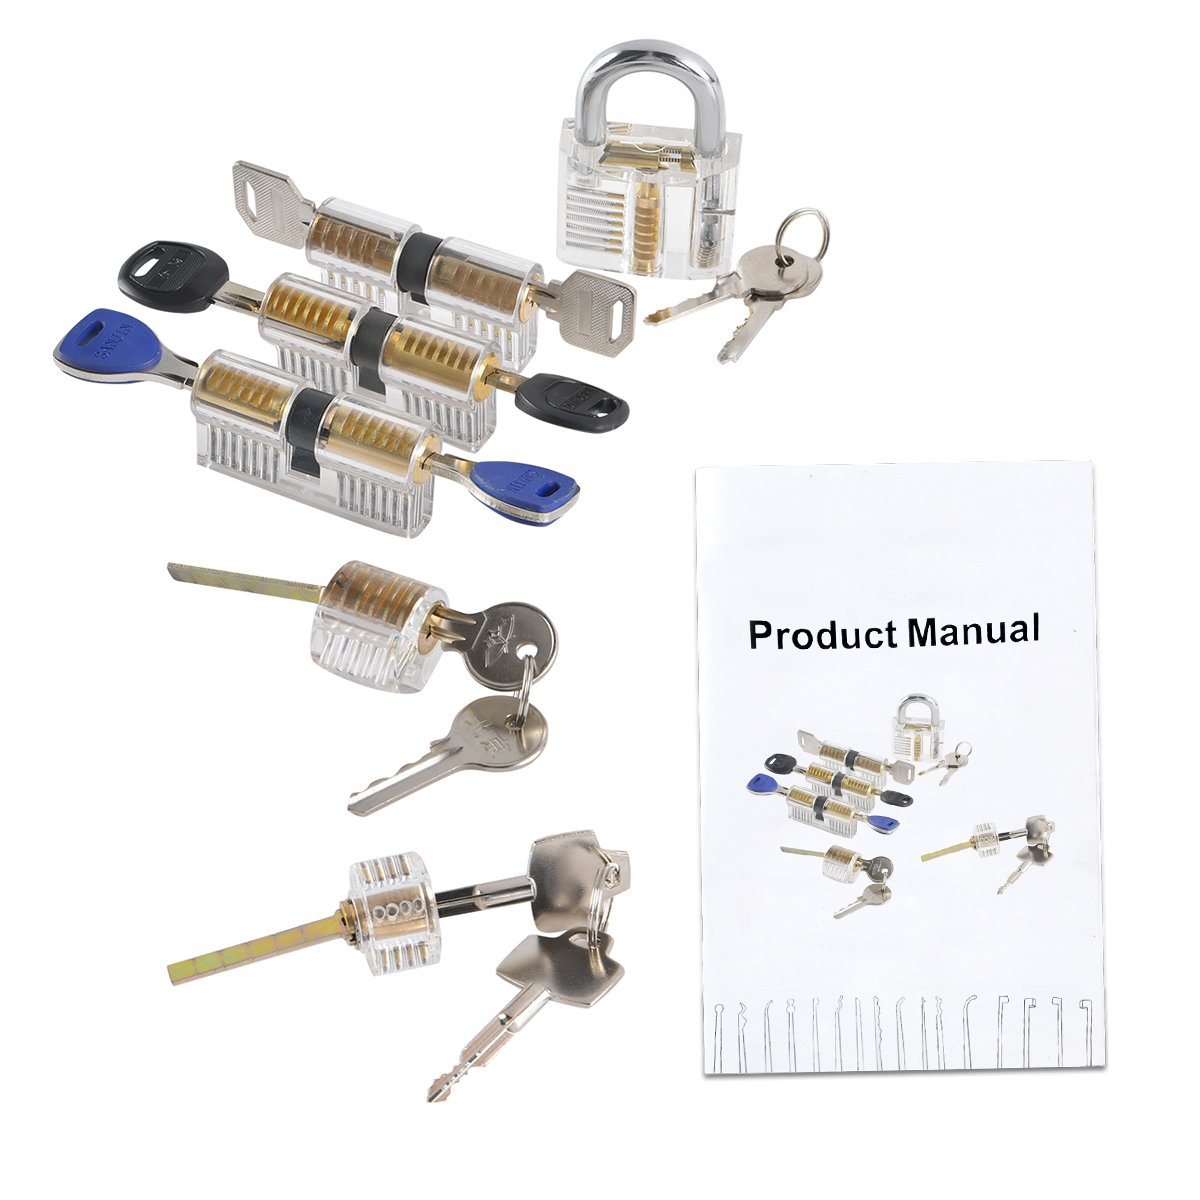 XINRUI 6 Pcs Practice Padlock, Visible Transparent Crystal Cutaway Padlock,Improving Training Skill For Locksmith by XINRUI (Image #1)